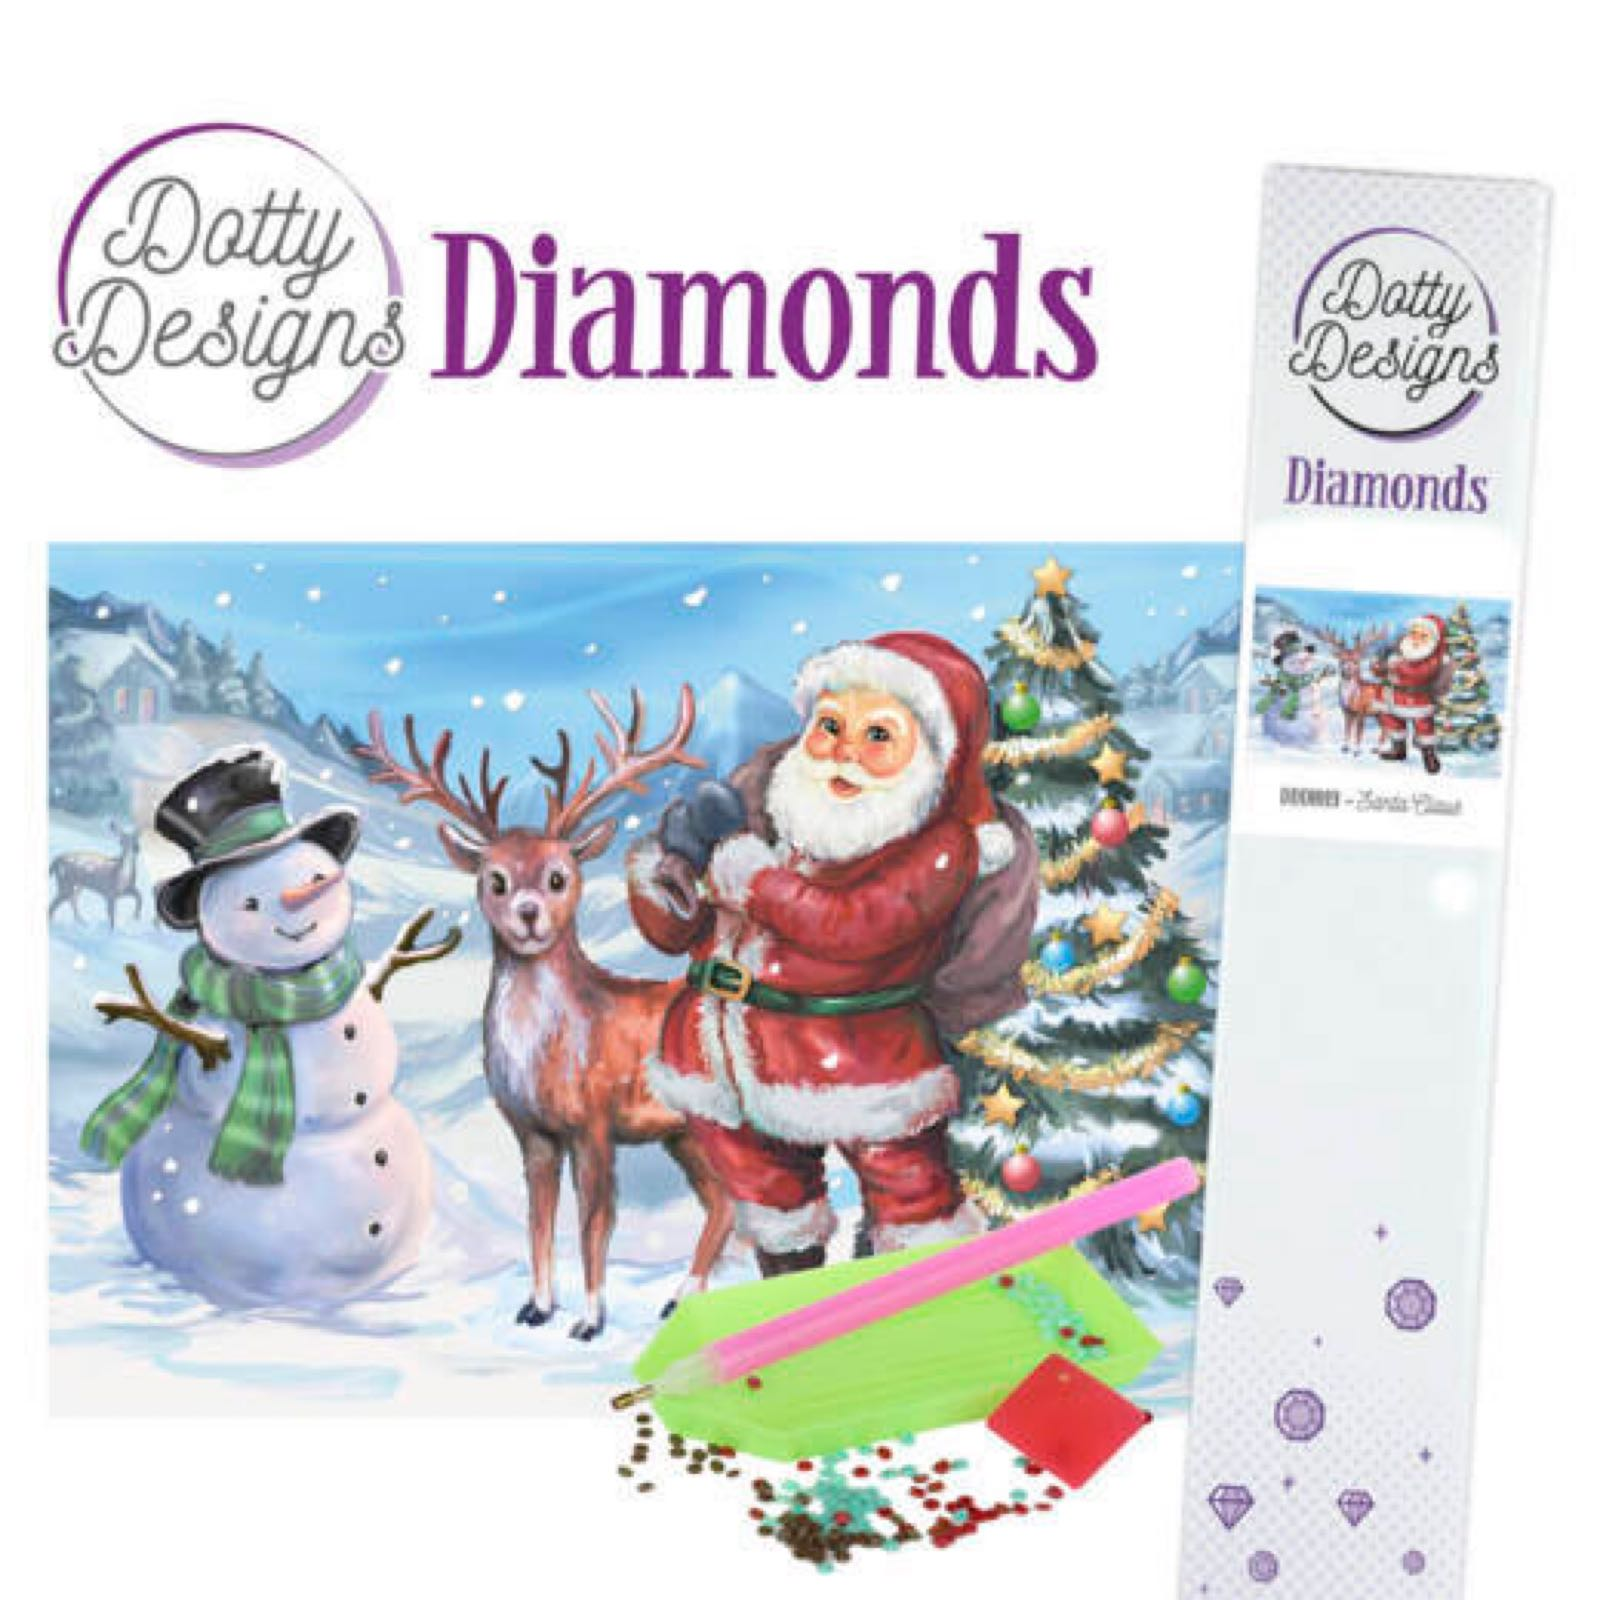 Dotty Design dimond Pearl santa Claus  DDD 1019